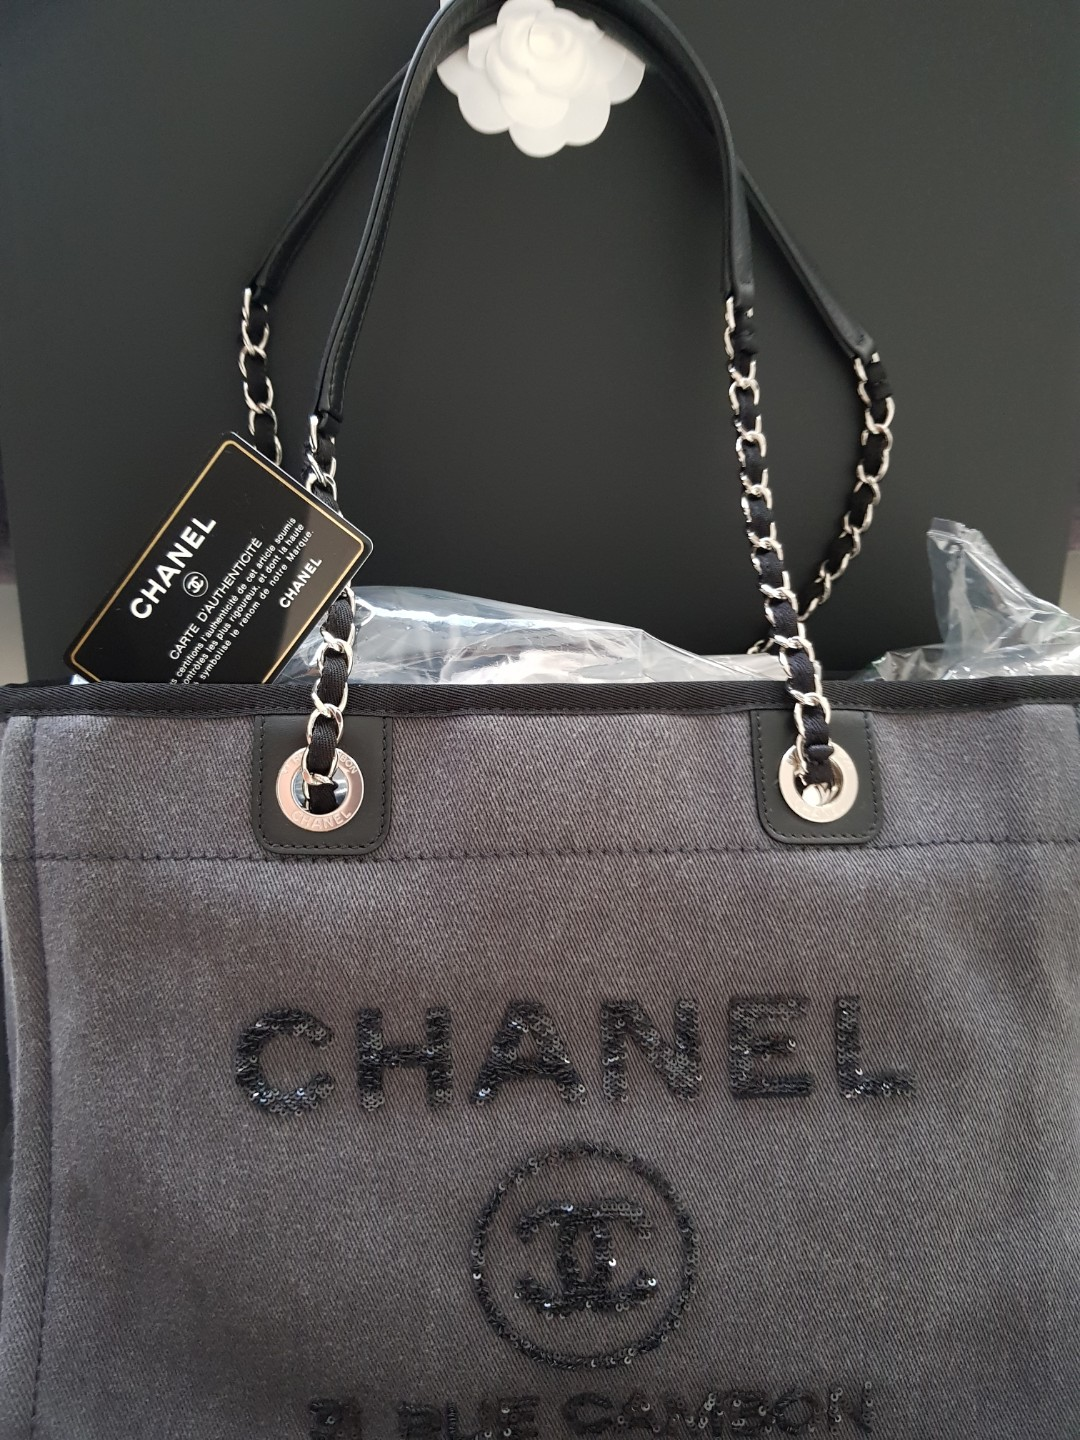 85f64a5046f3af Popular* Chanel Deauville Tote, Luxury, Bags & Wallets, Handbags on ...